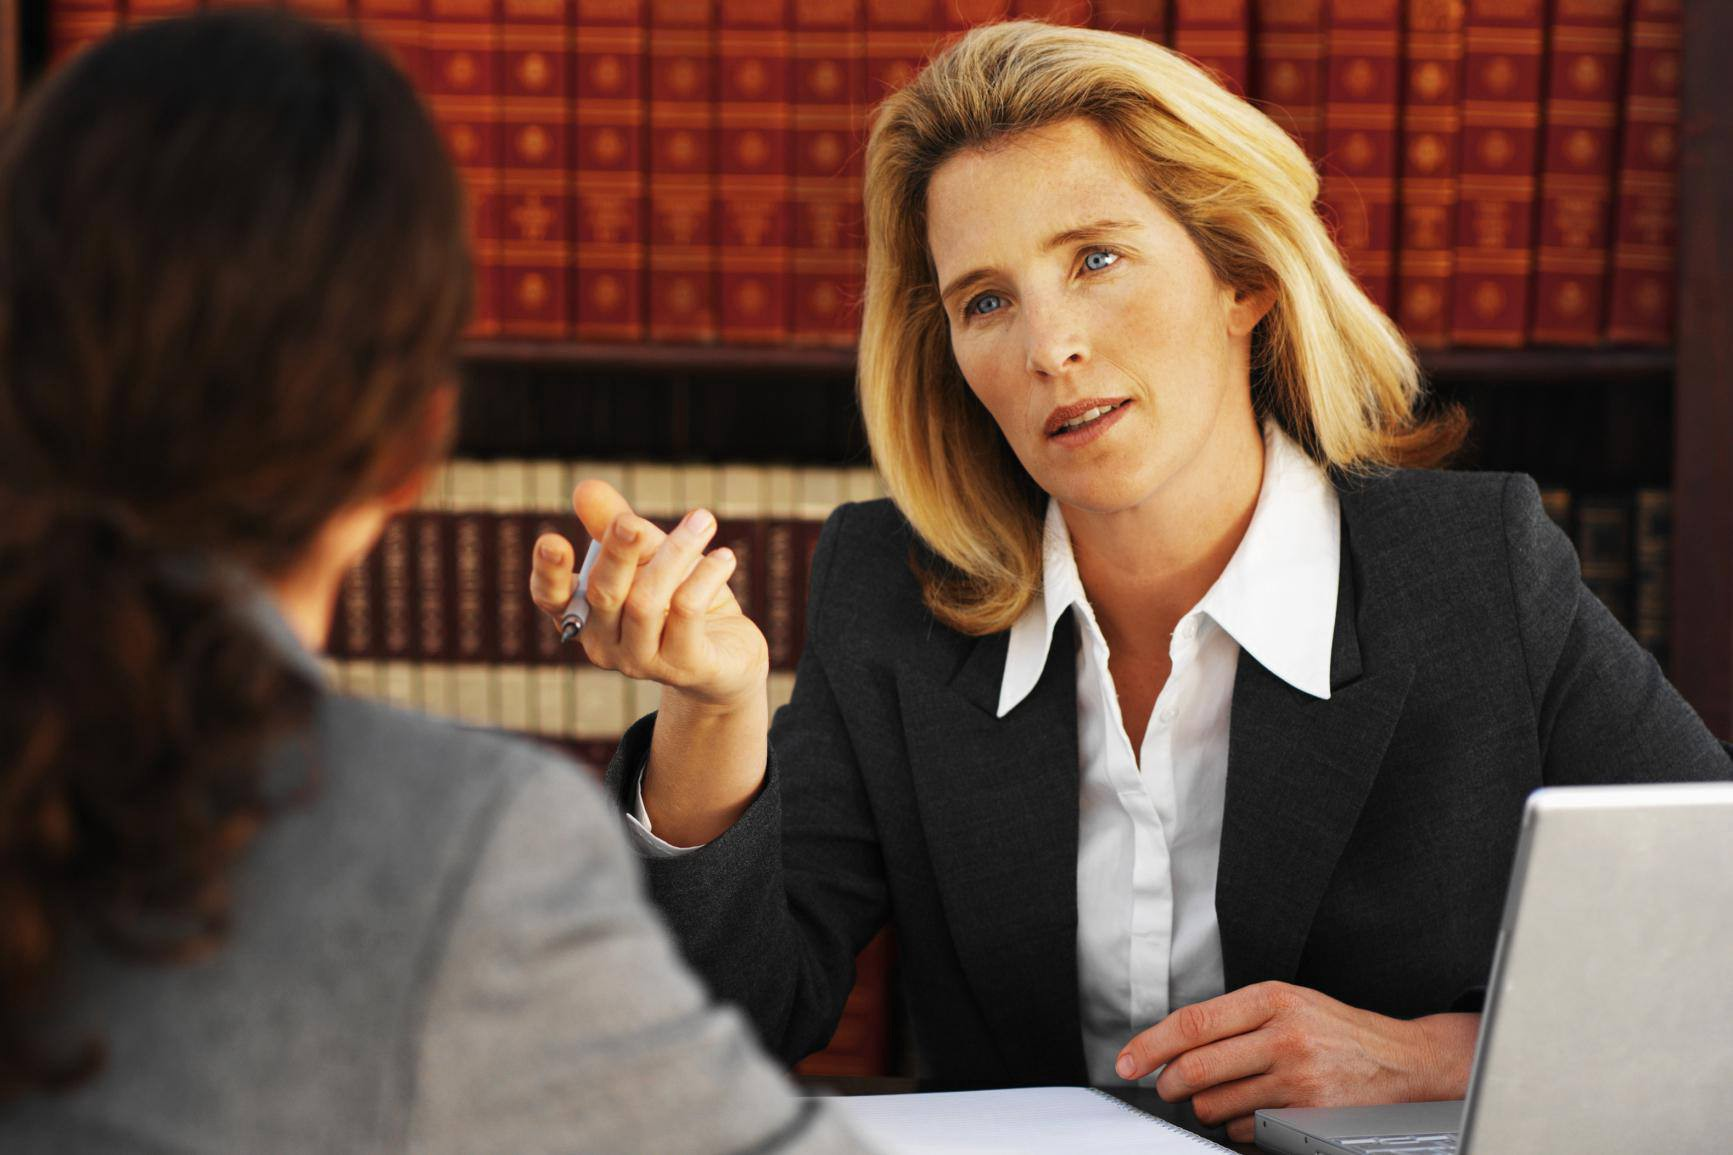 Tips And Tricks On Getting The Legal Advice You Need